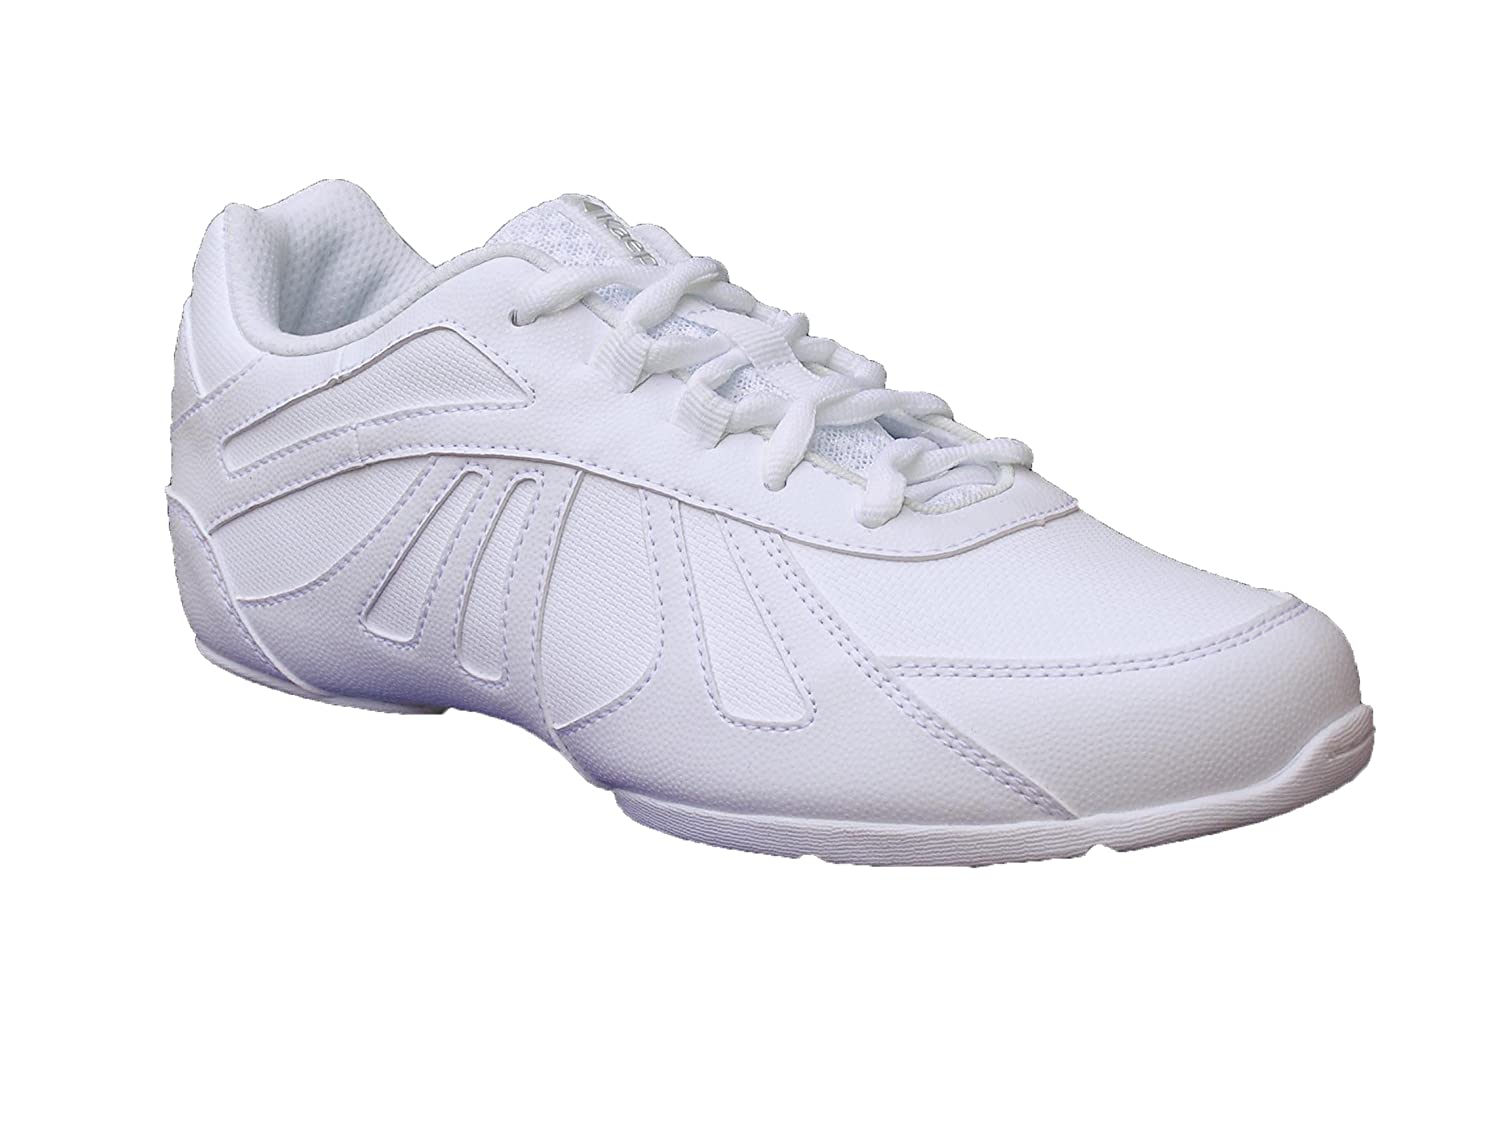 Kaepa Women's TouchUp Cheer Shoe 6.5|White B00X74LS2K Size 6.5|White Shoe f59c97